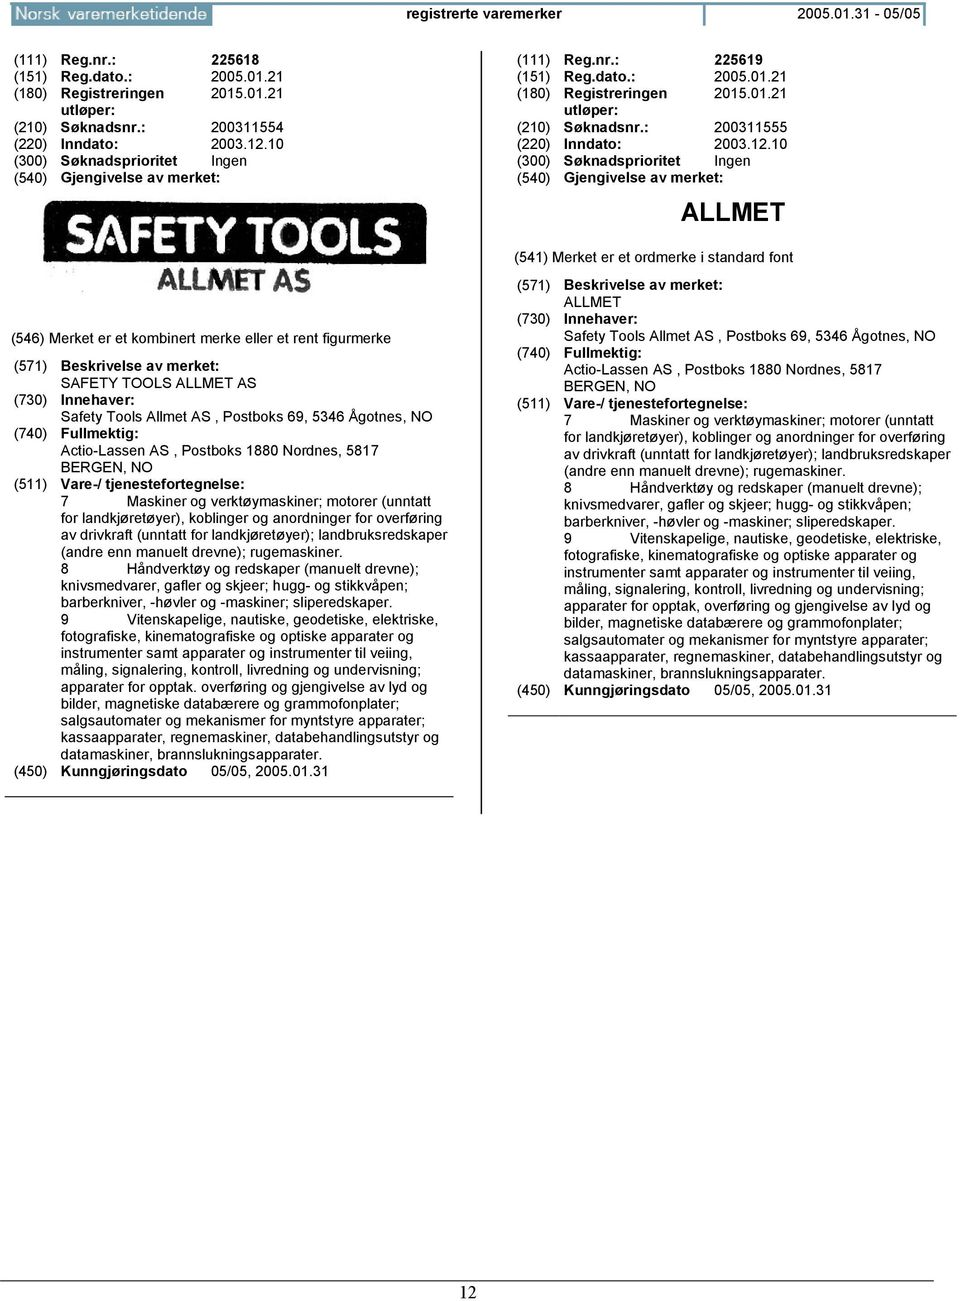 10 ALLMET SAFETY TOOLS ALLMET AS Safety Tools Allmet AS, Postboks 69, 5346 Ågotnes, Actio-Lassen AS, Postboks 1880 Nordnes, 5817 BERGEN, 7 Maskiner og verktøymaskiner; motorer (unntatt for